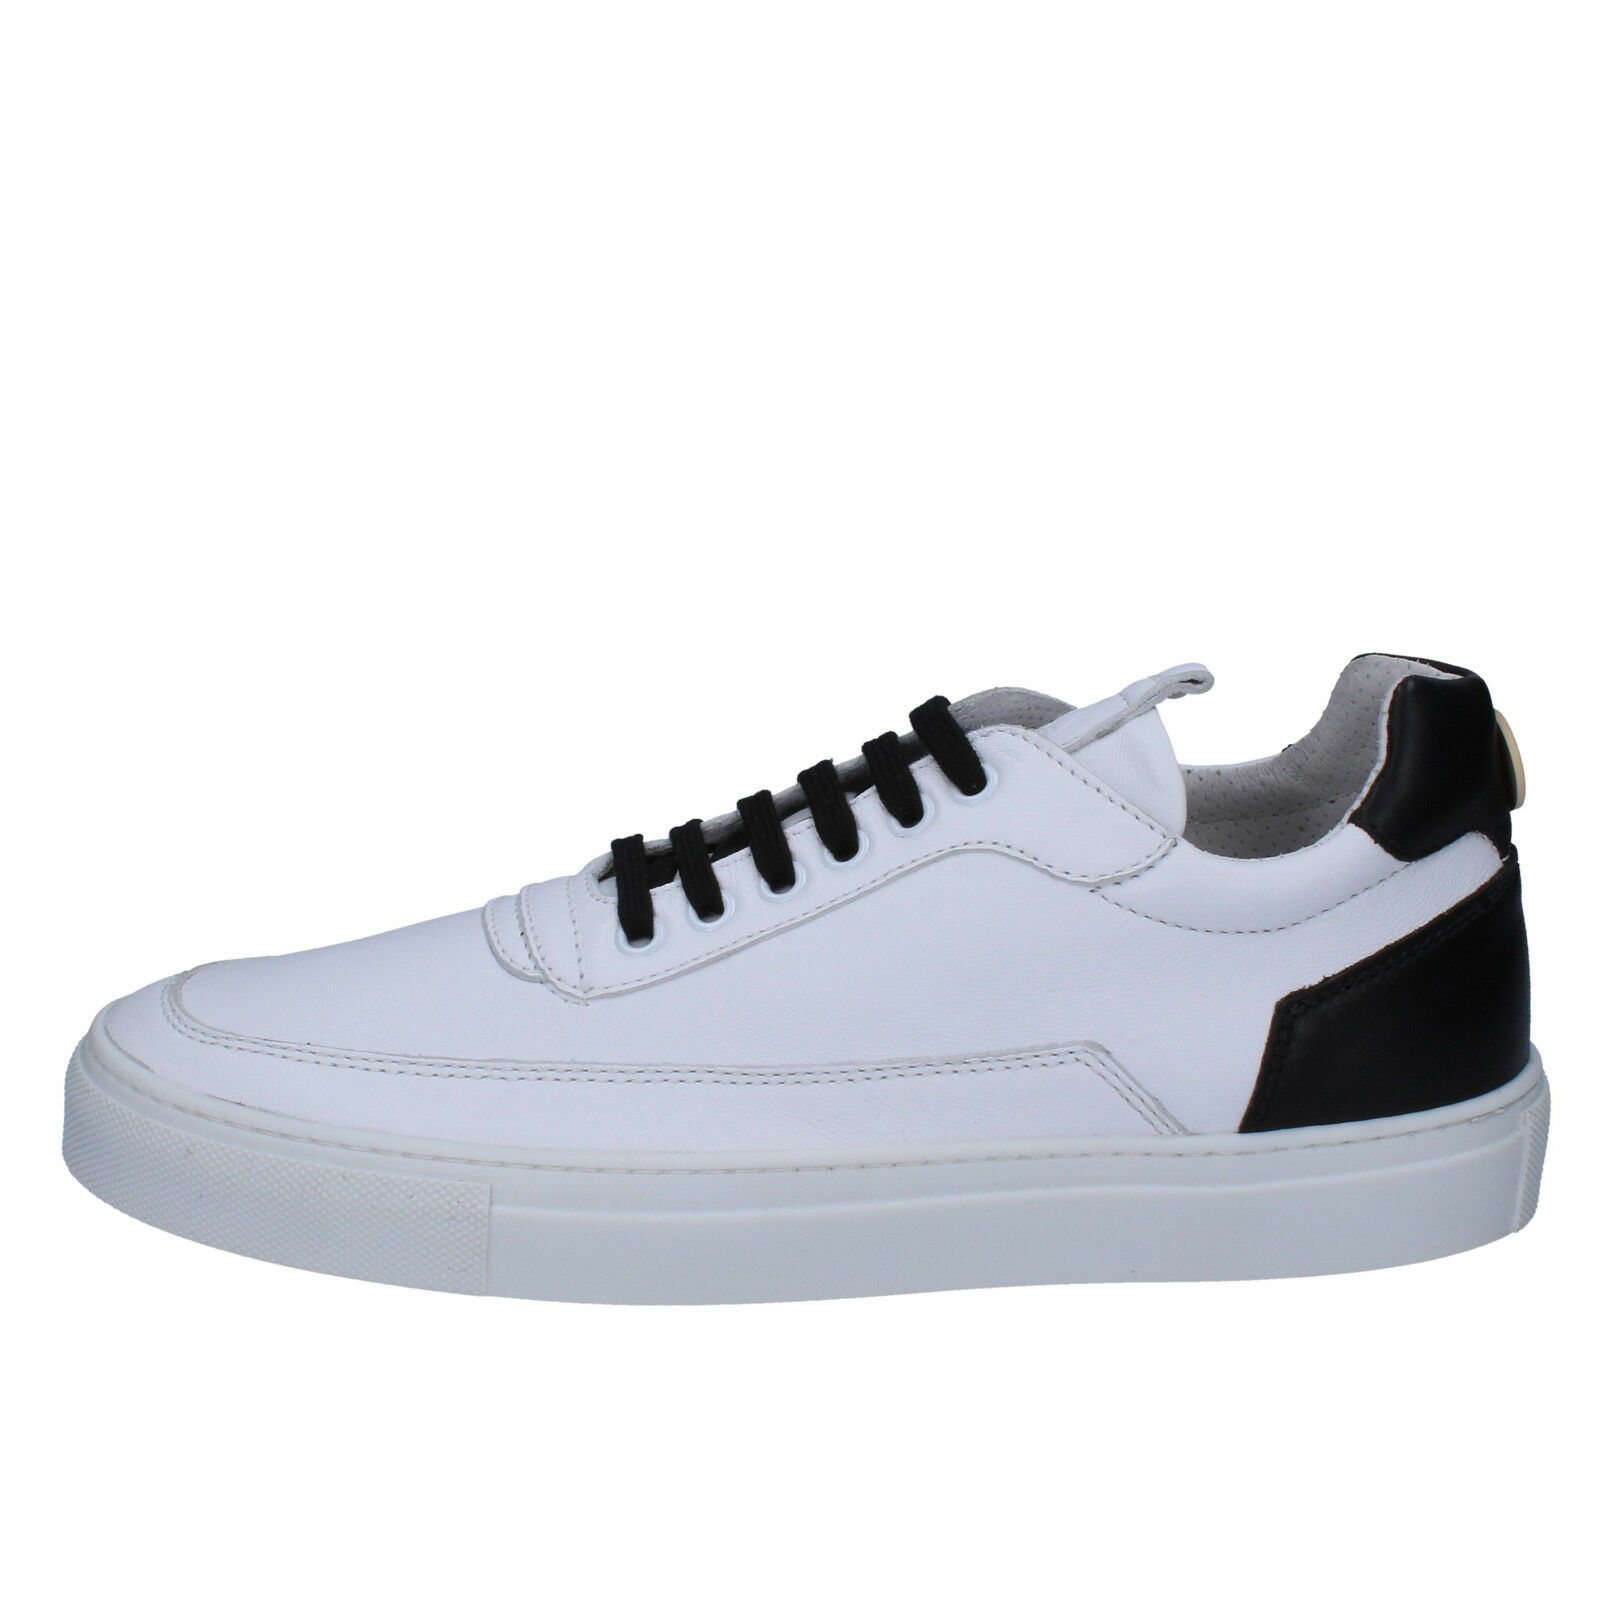 Mens shoes MARIANO DI VAIO 10 (EU 44) sneakers white black leather AB771-G